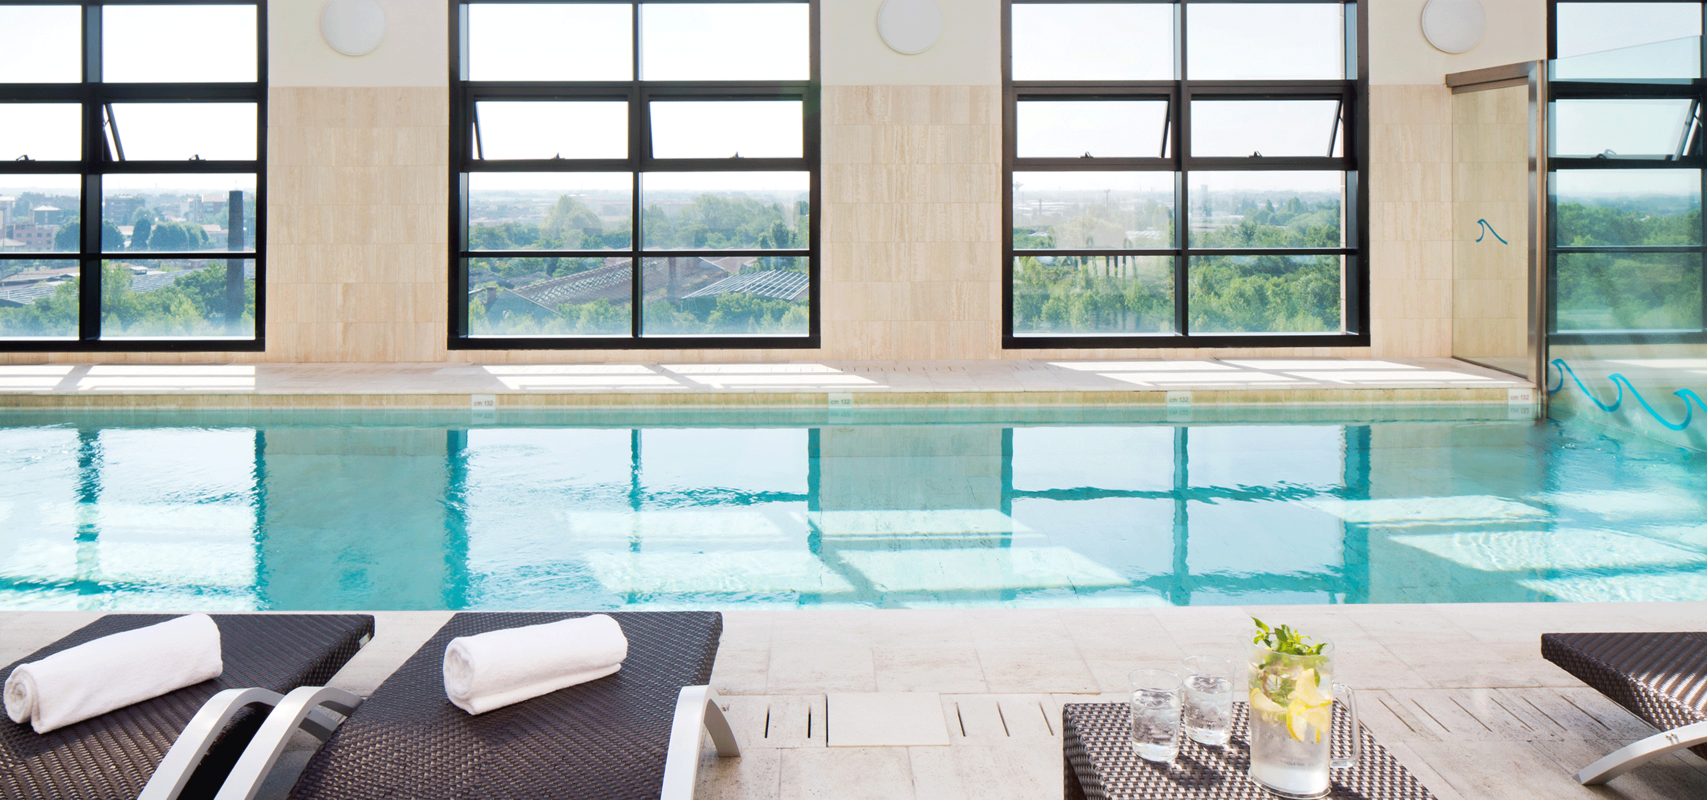 La piscina dello Starthotels Grand Milan